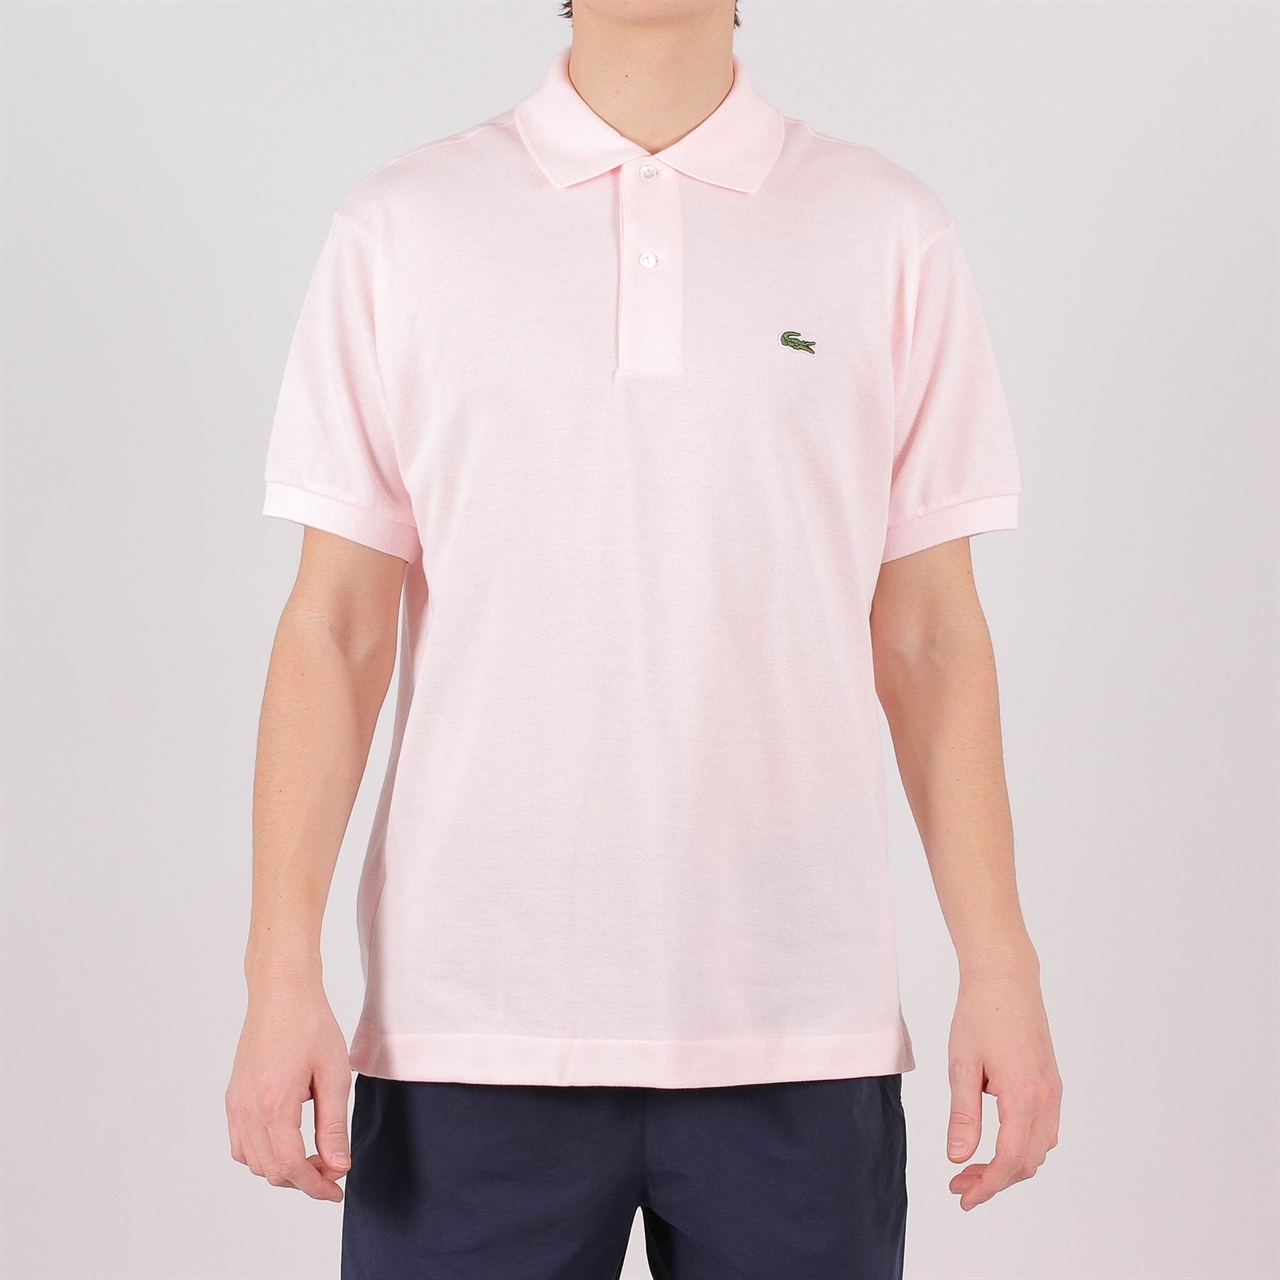 Light Polo Lacoste Grey Lacoste Polo Light Grey Polo 354RjLAq